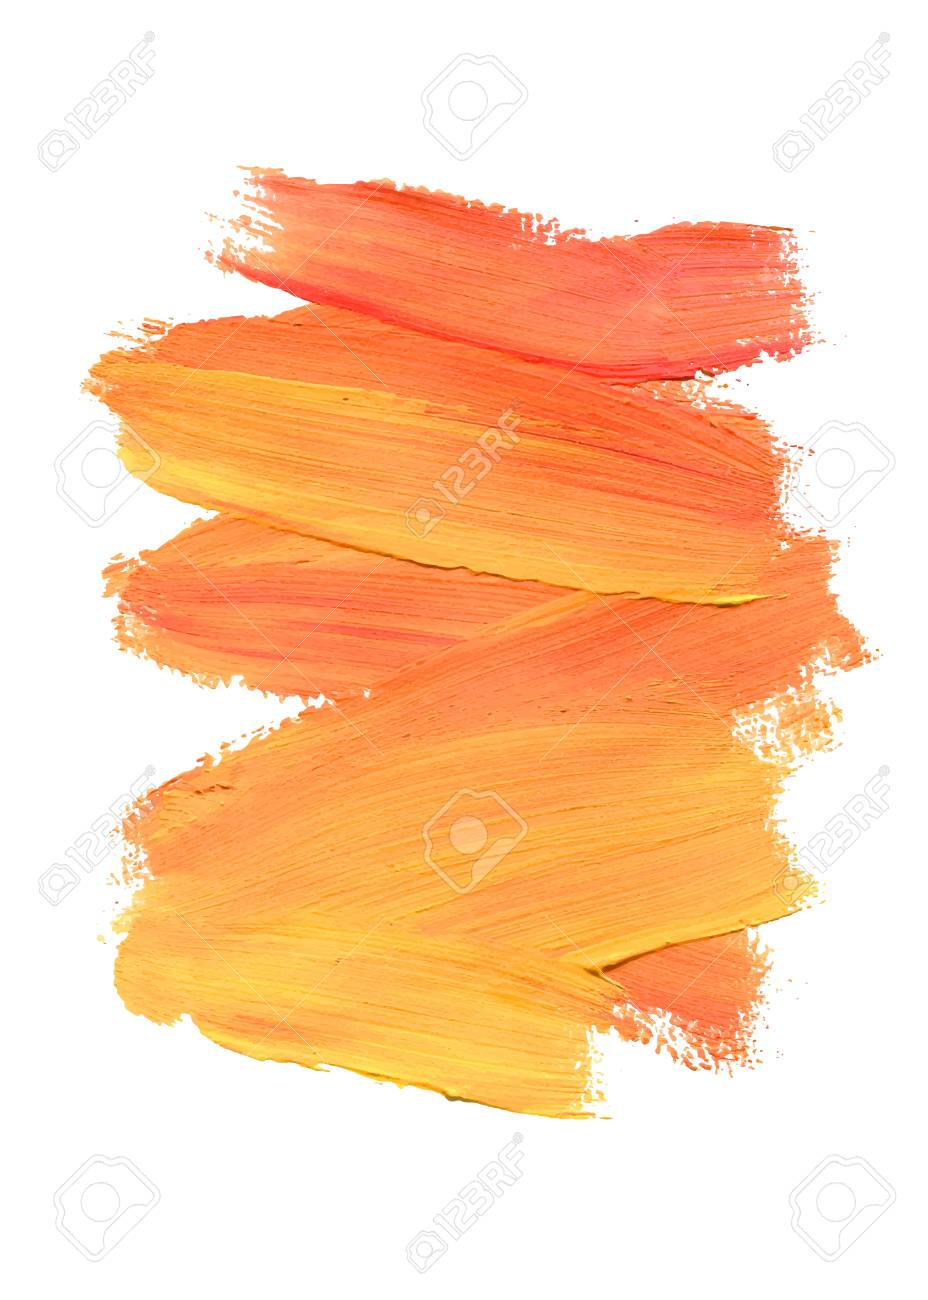 brush stroke acrylic paint stain peach color stroke of the